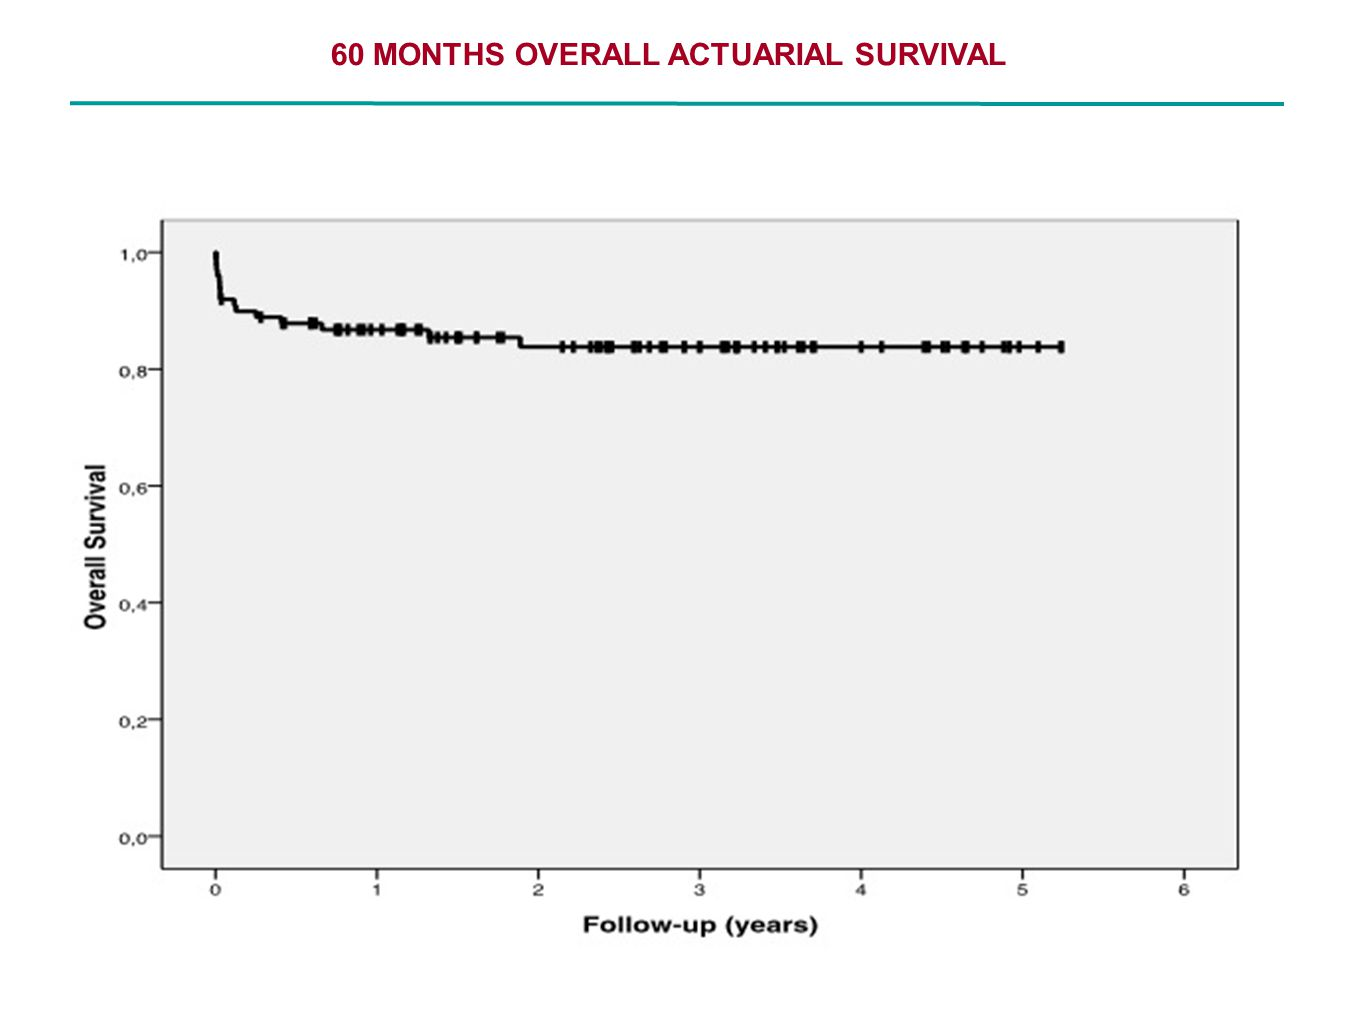 60 MONTHS OVERALL ACTUARIAL SURVIVAL